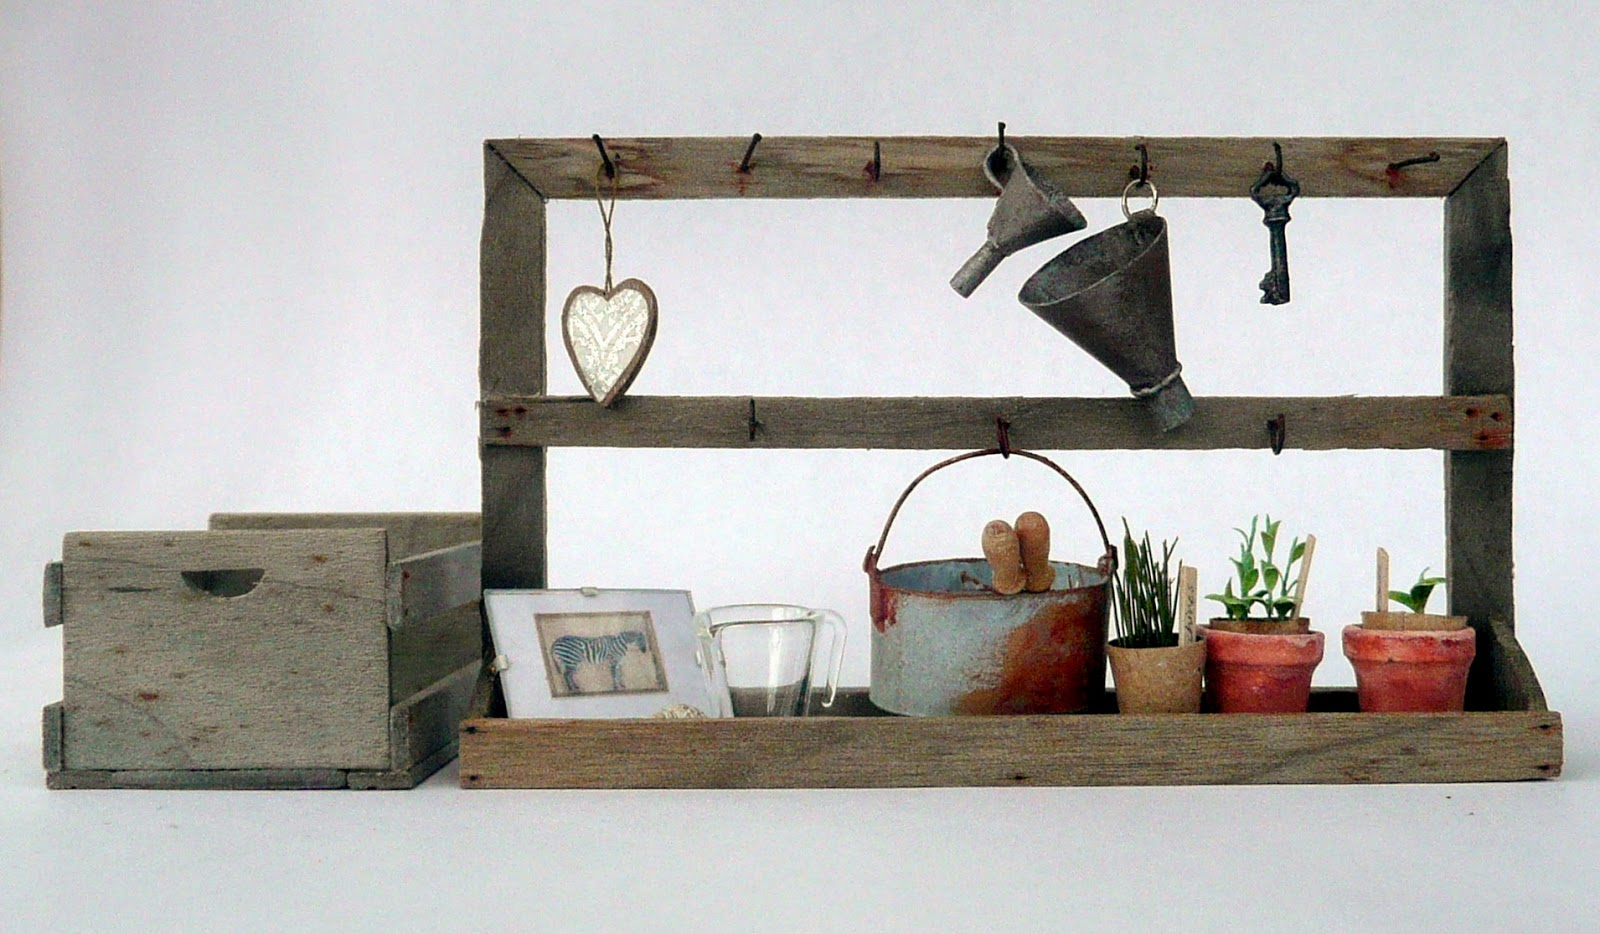 Superb img of Amber's House: 1:12 scale Rustic Shelf with #954736 color and 1600x934 pixels